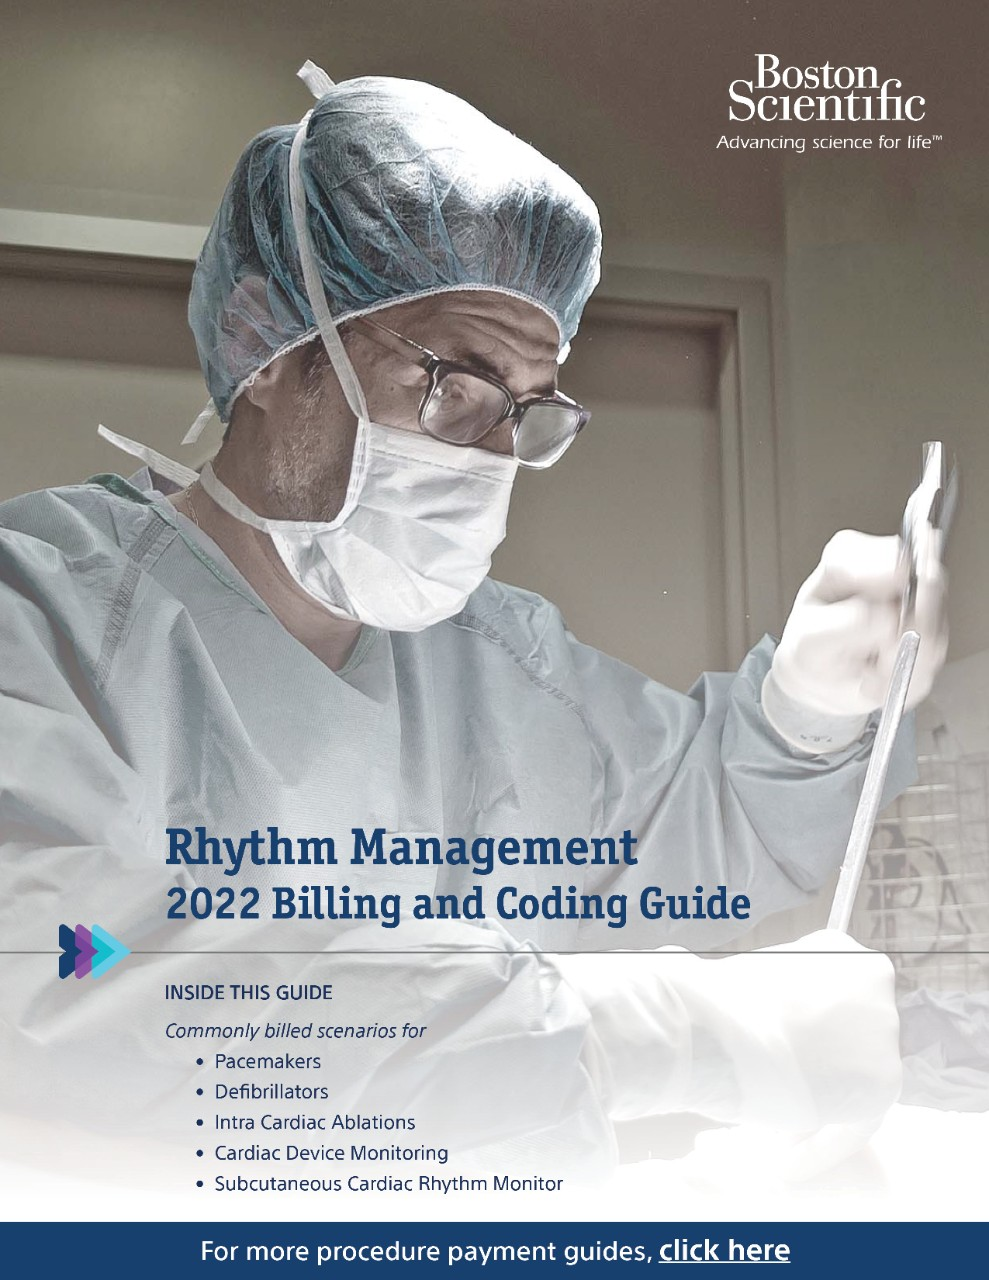 Billing_and_Coding_Guide_for_Cardiac_Rhythm_Management